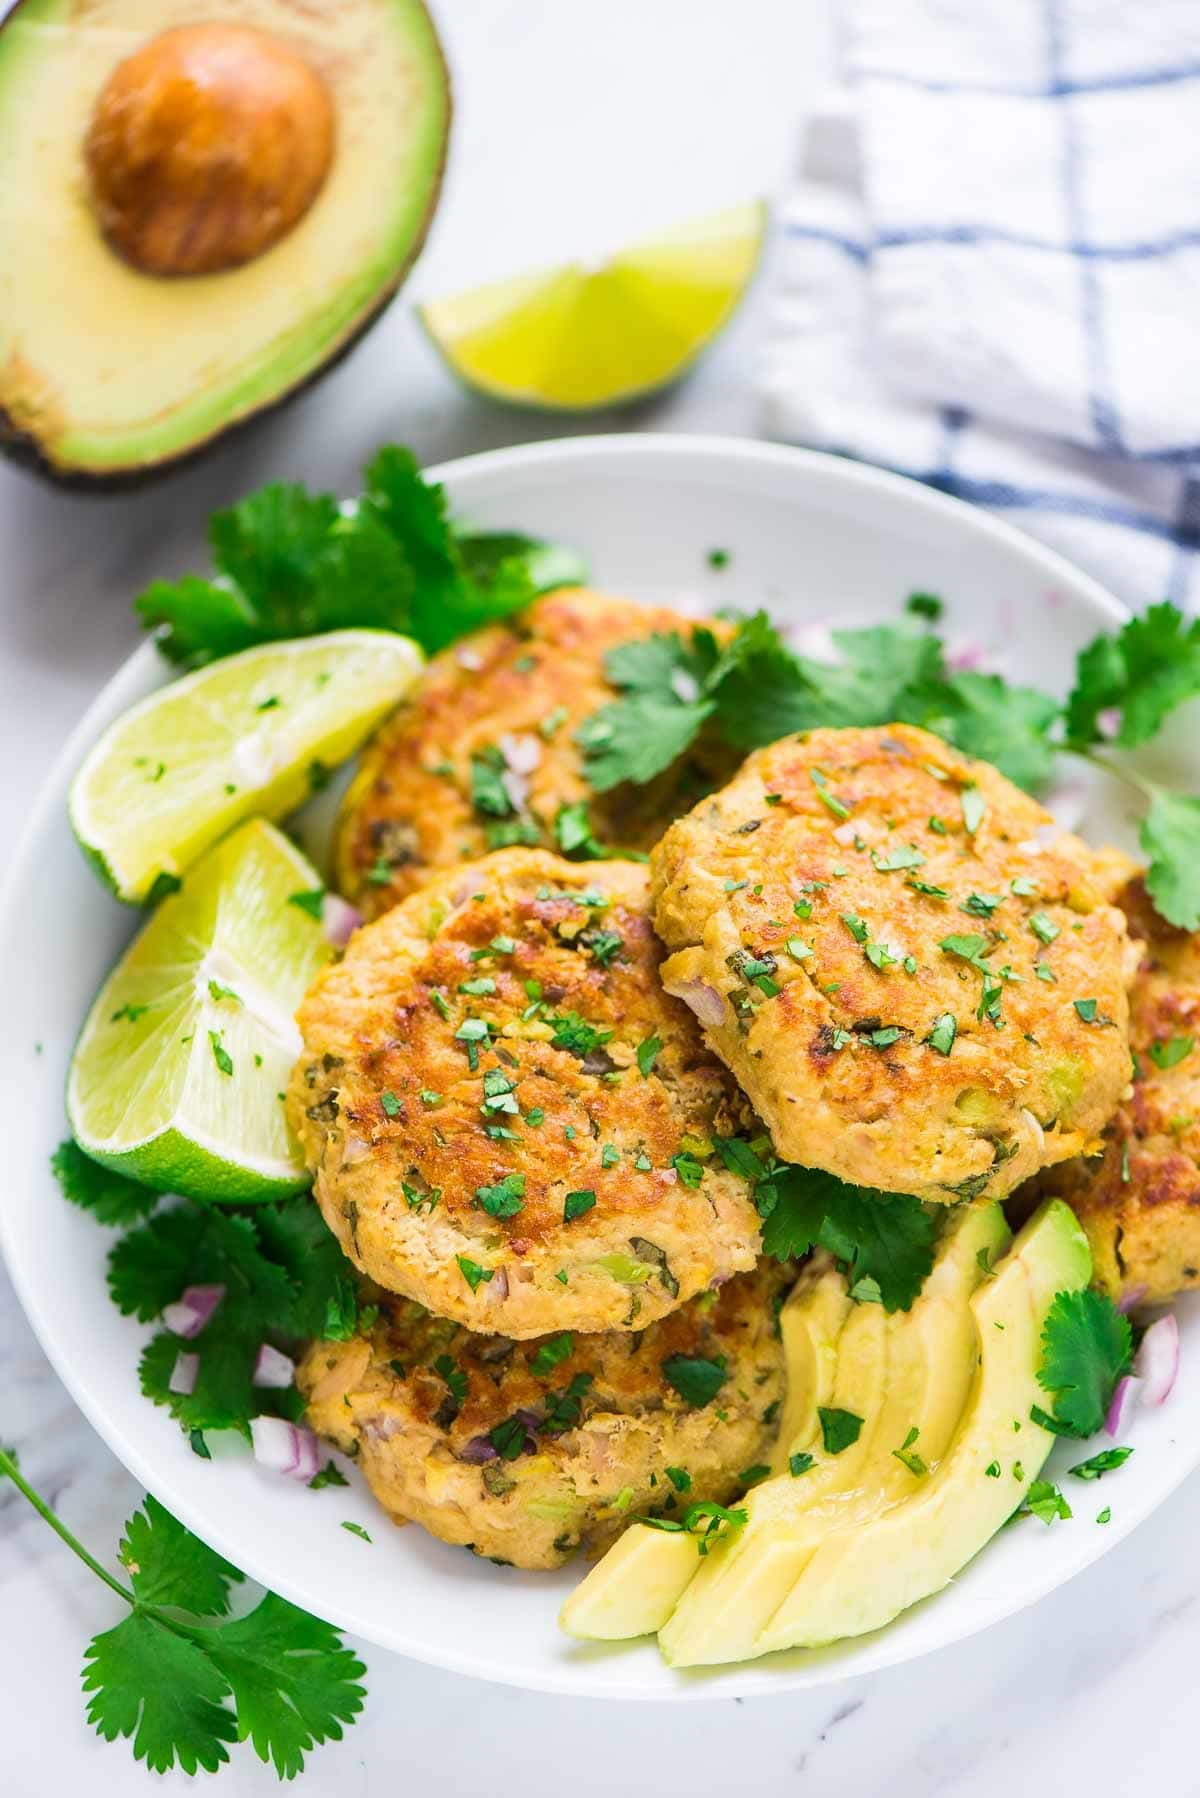 Easy Baked Avocado Tuna Cakes. Quick, healthy, and delicious! This simple, budget-friendly recipe is a family favorite. Recipe at wellplated.com   @wellplated